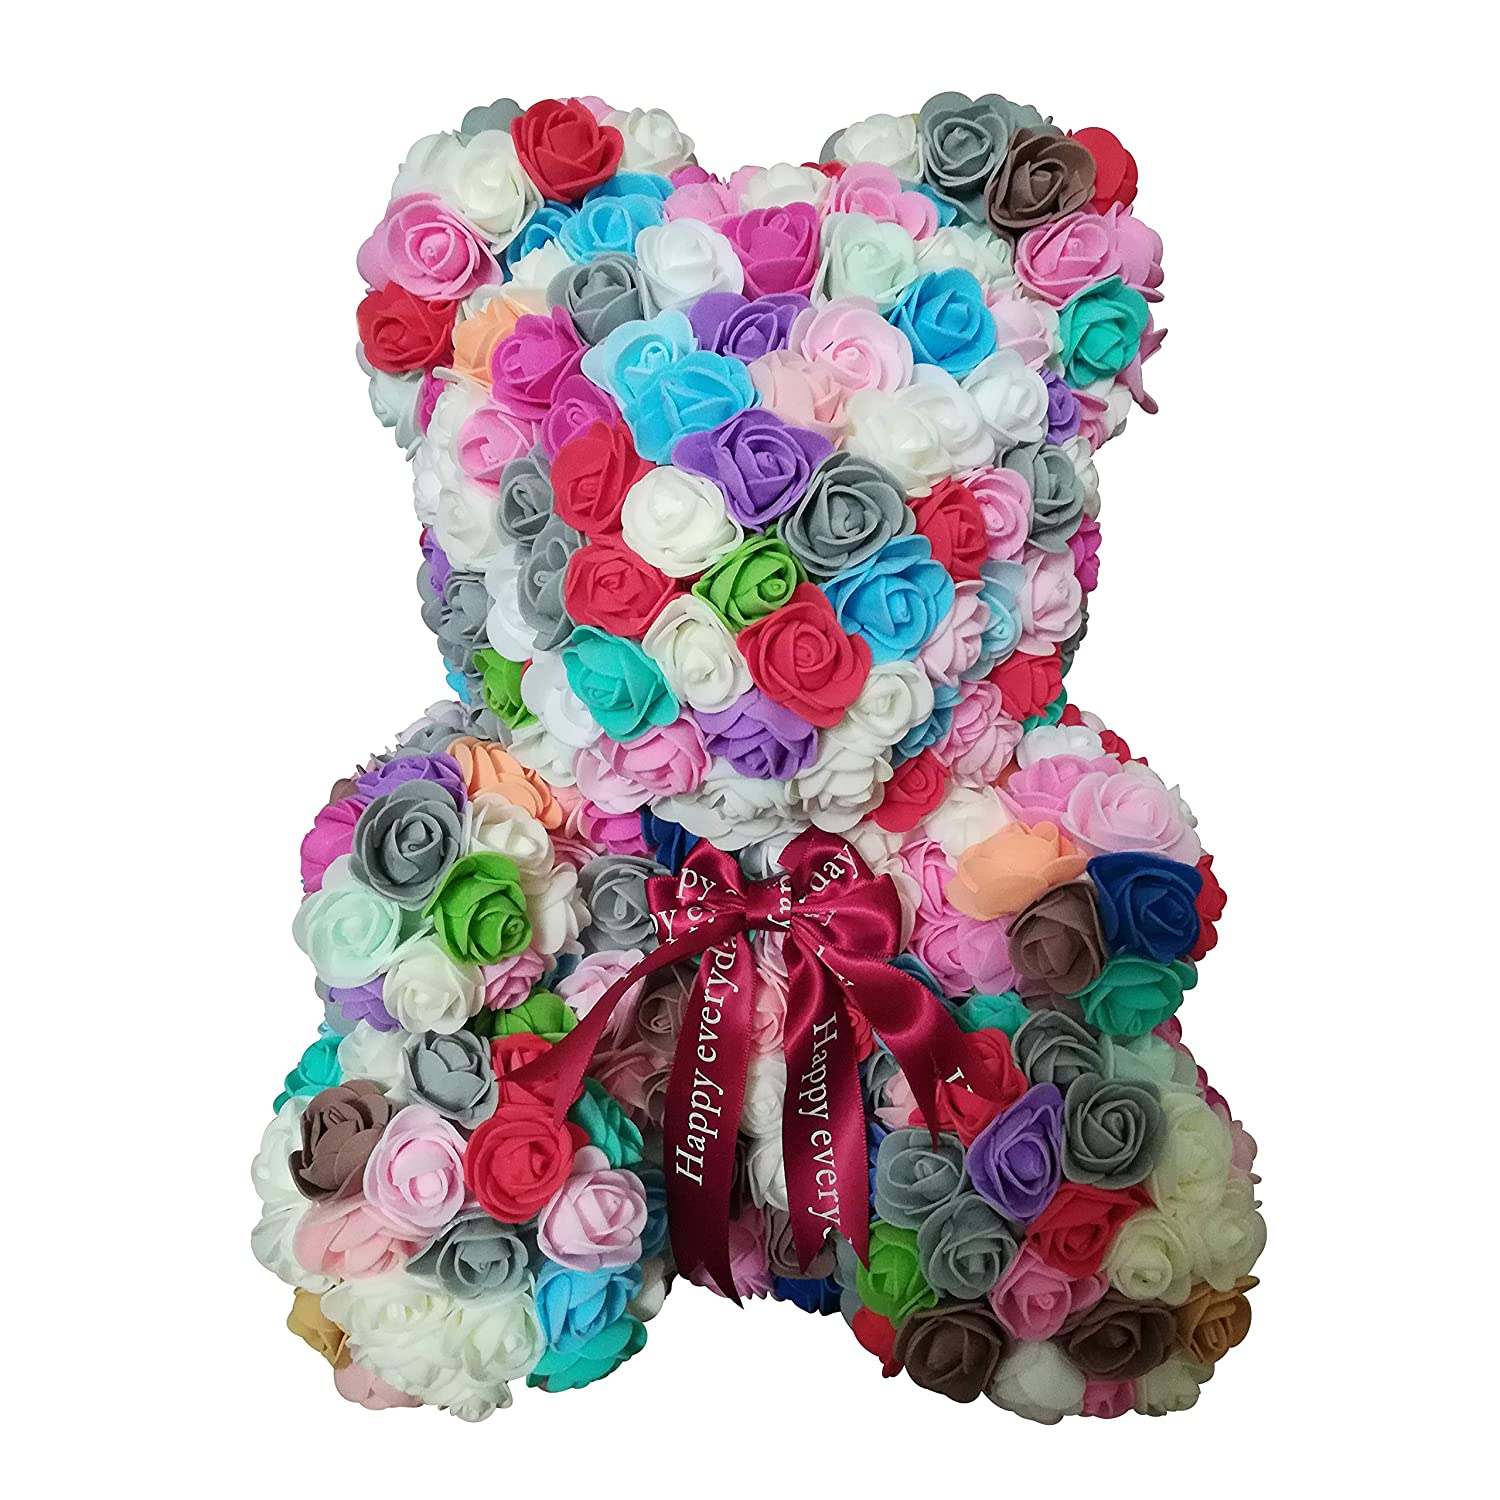 Teddy Bear Rose Bear Artificial Rose Bear Cub Anniversary Christmas Valentines Gift by Longshow forever artificial rose Forever Rose Everlasting Flower for Window Display tigerlee